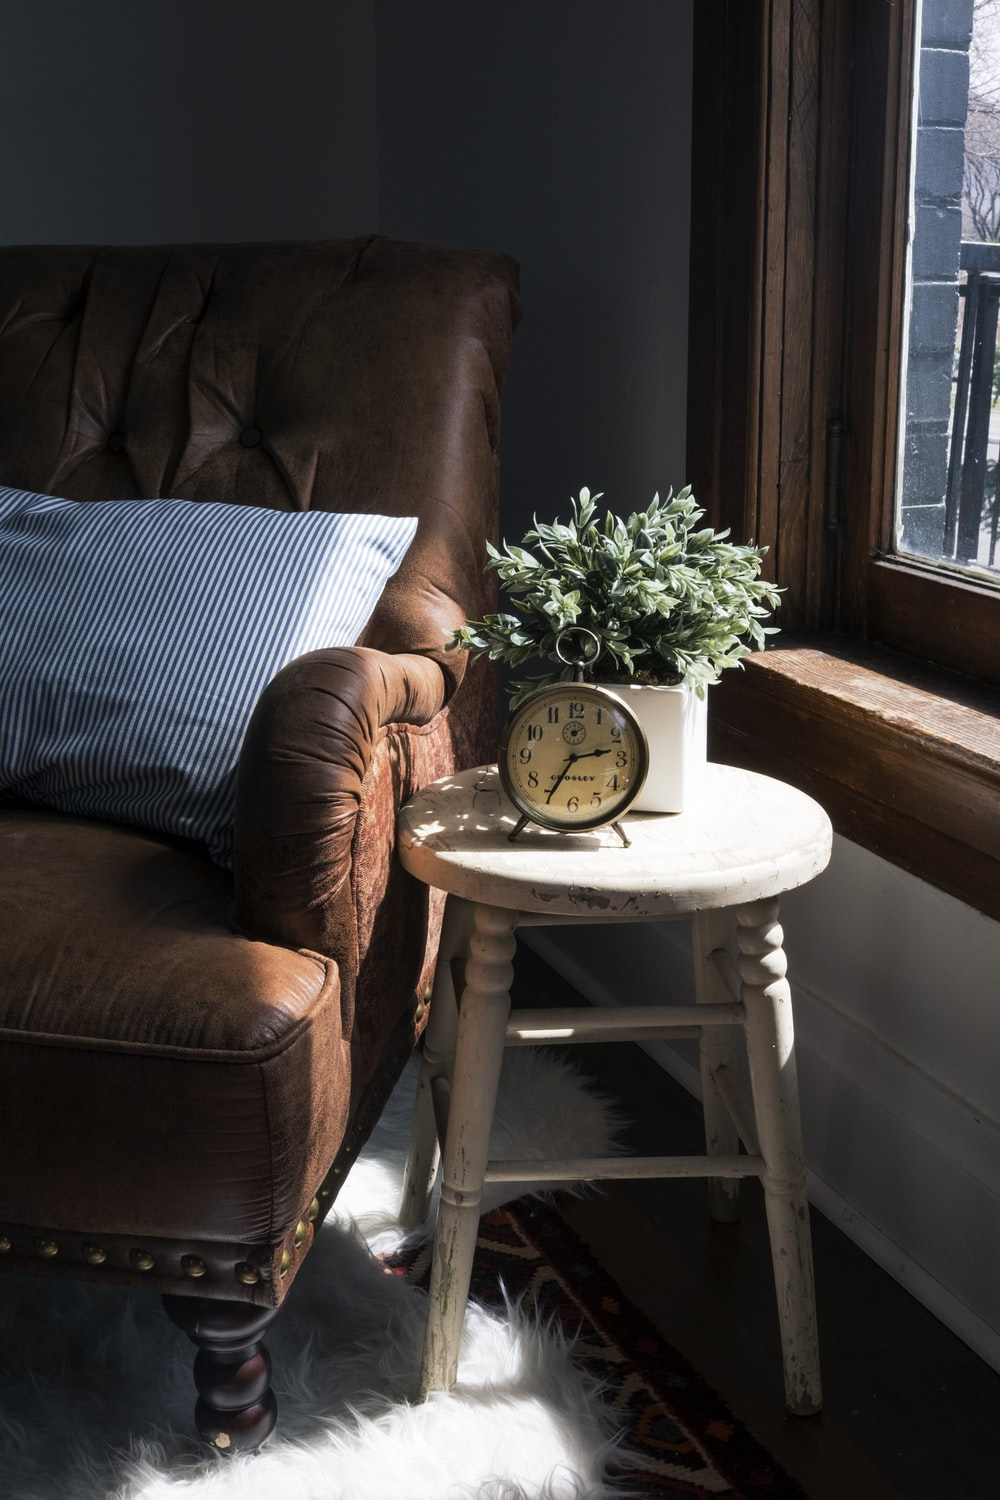 brown leather padded sofa armchair next to white wooden stool chair with round gray metal analog clock